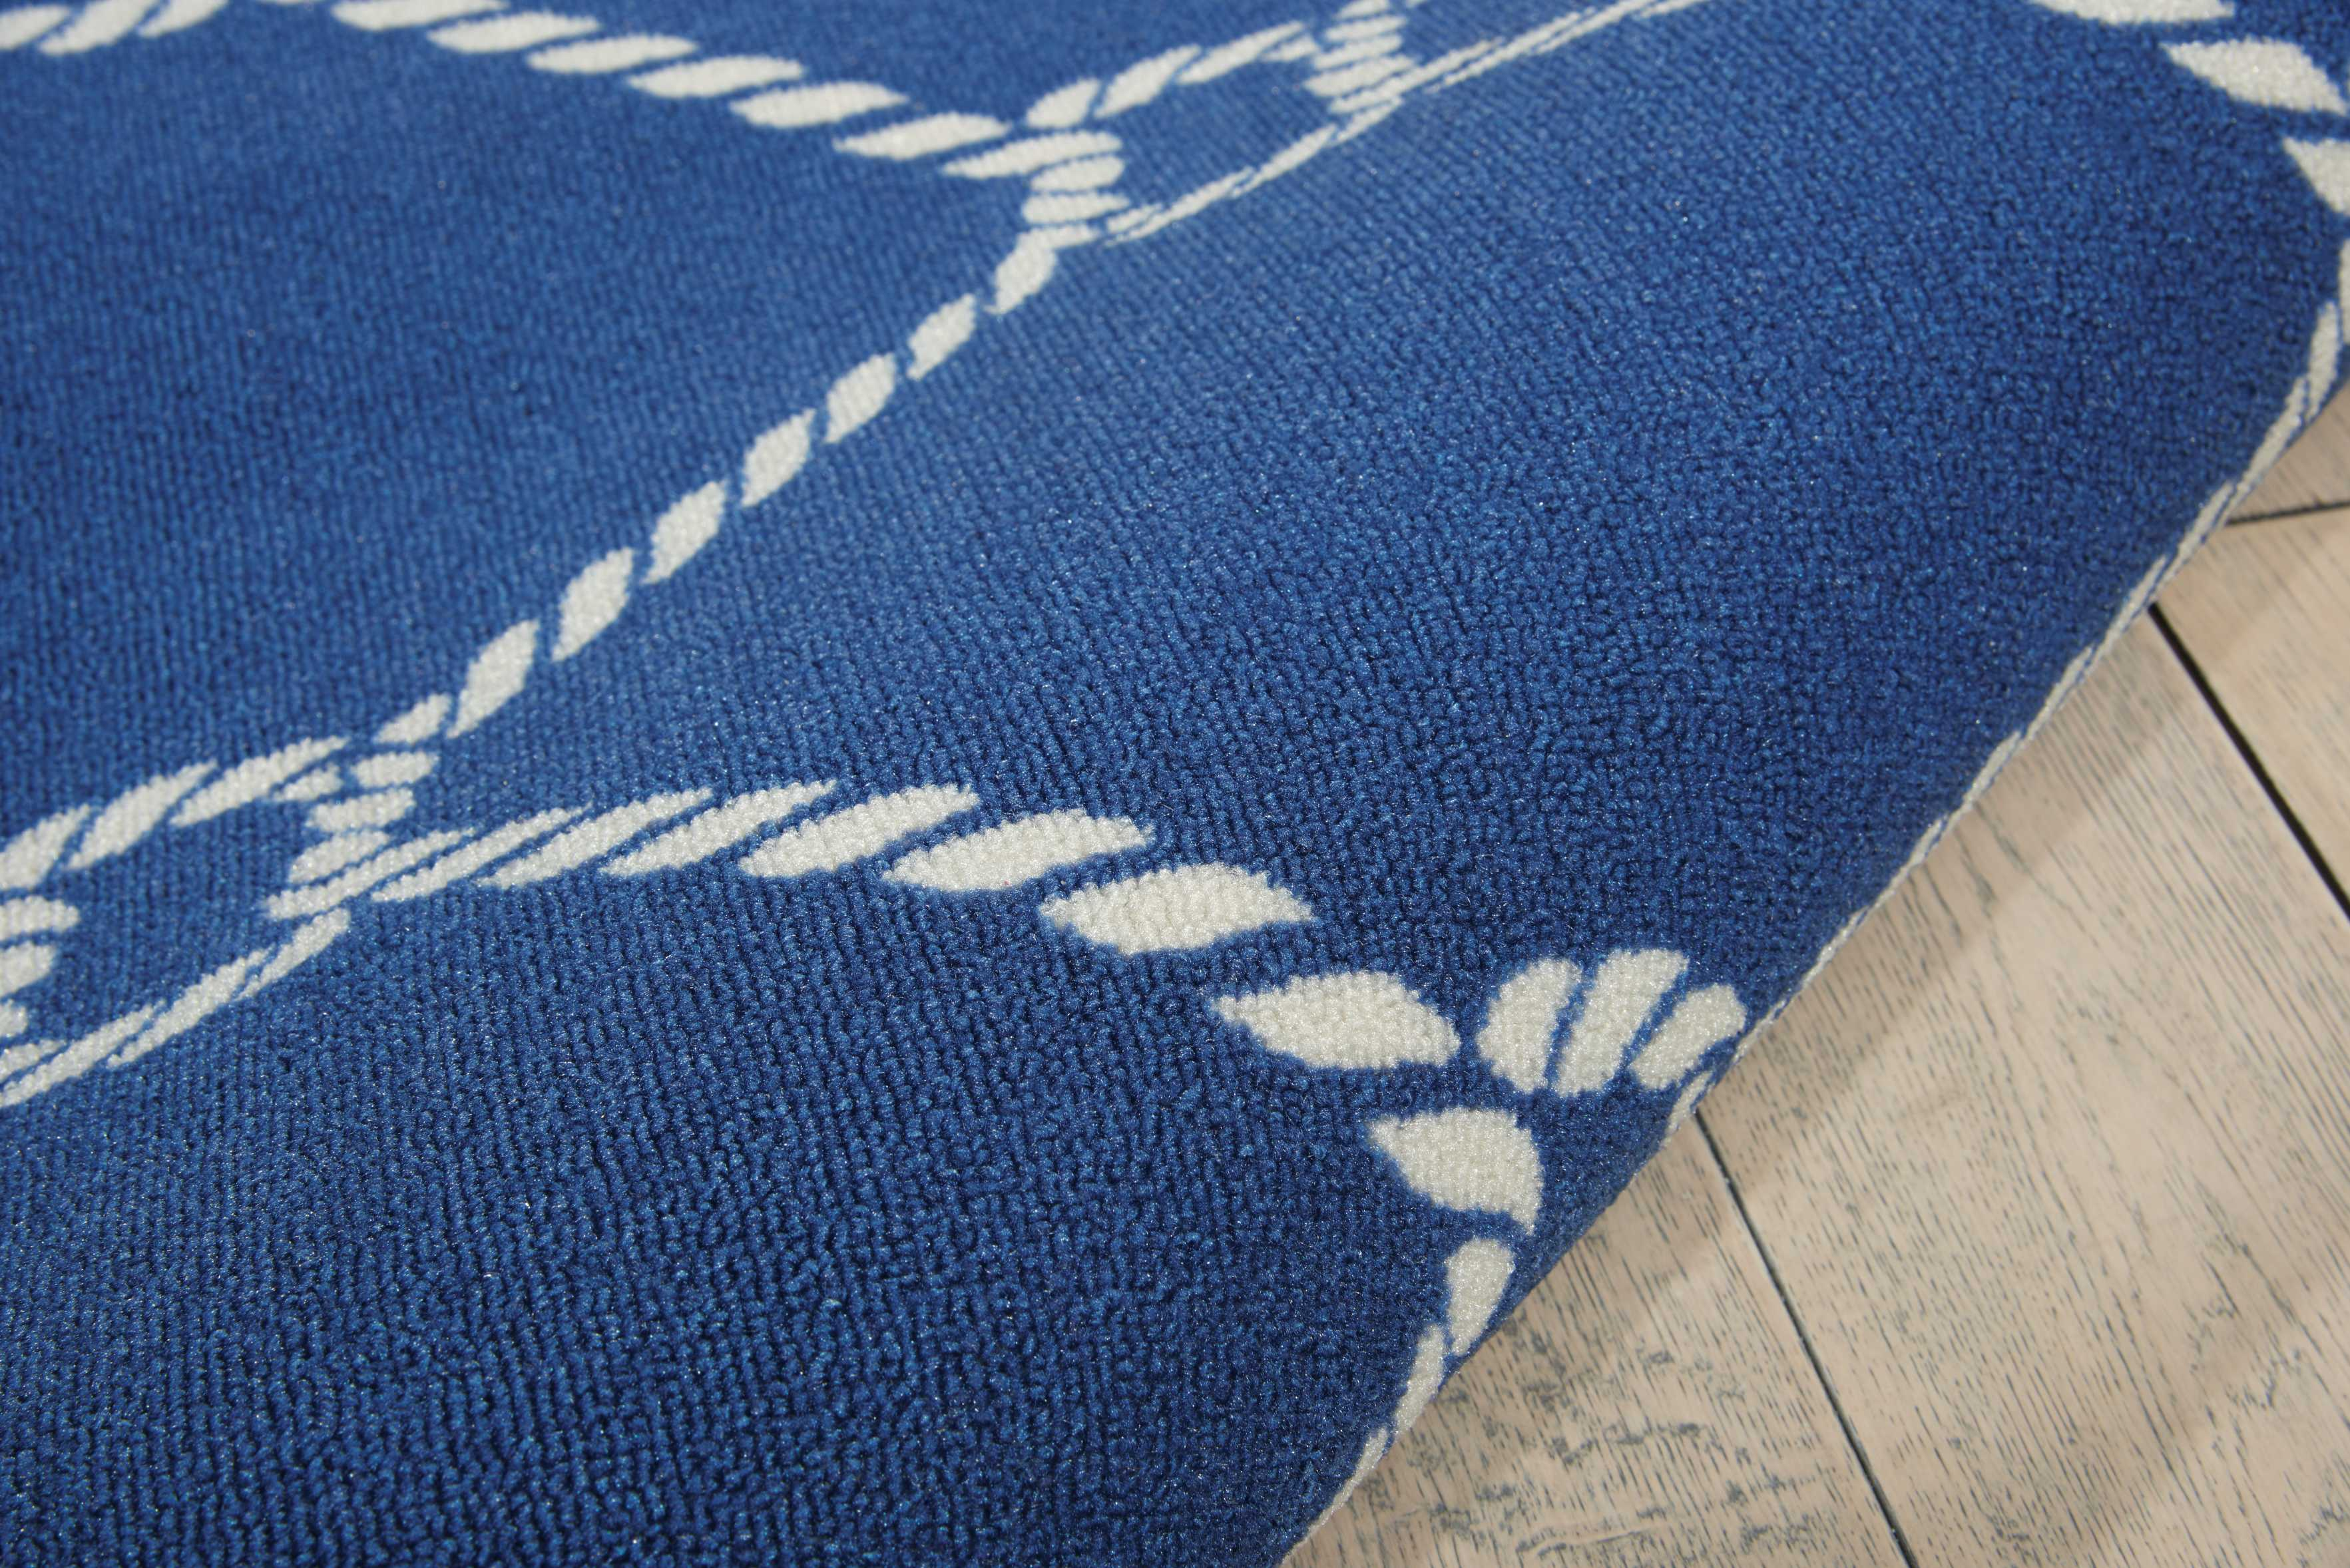 Waverly Sun & Shade Rope Navy Indoor/Outdoor Area Rug by Nourison